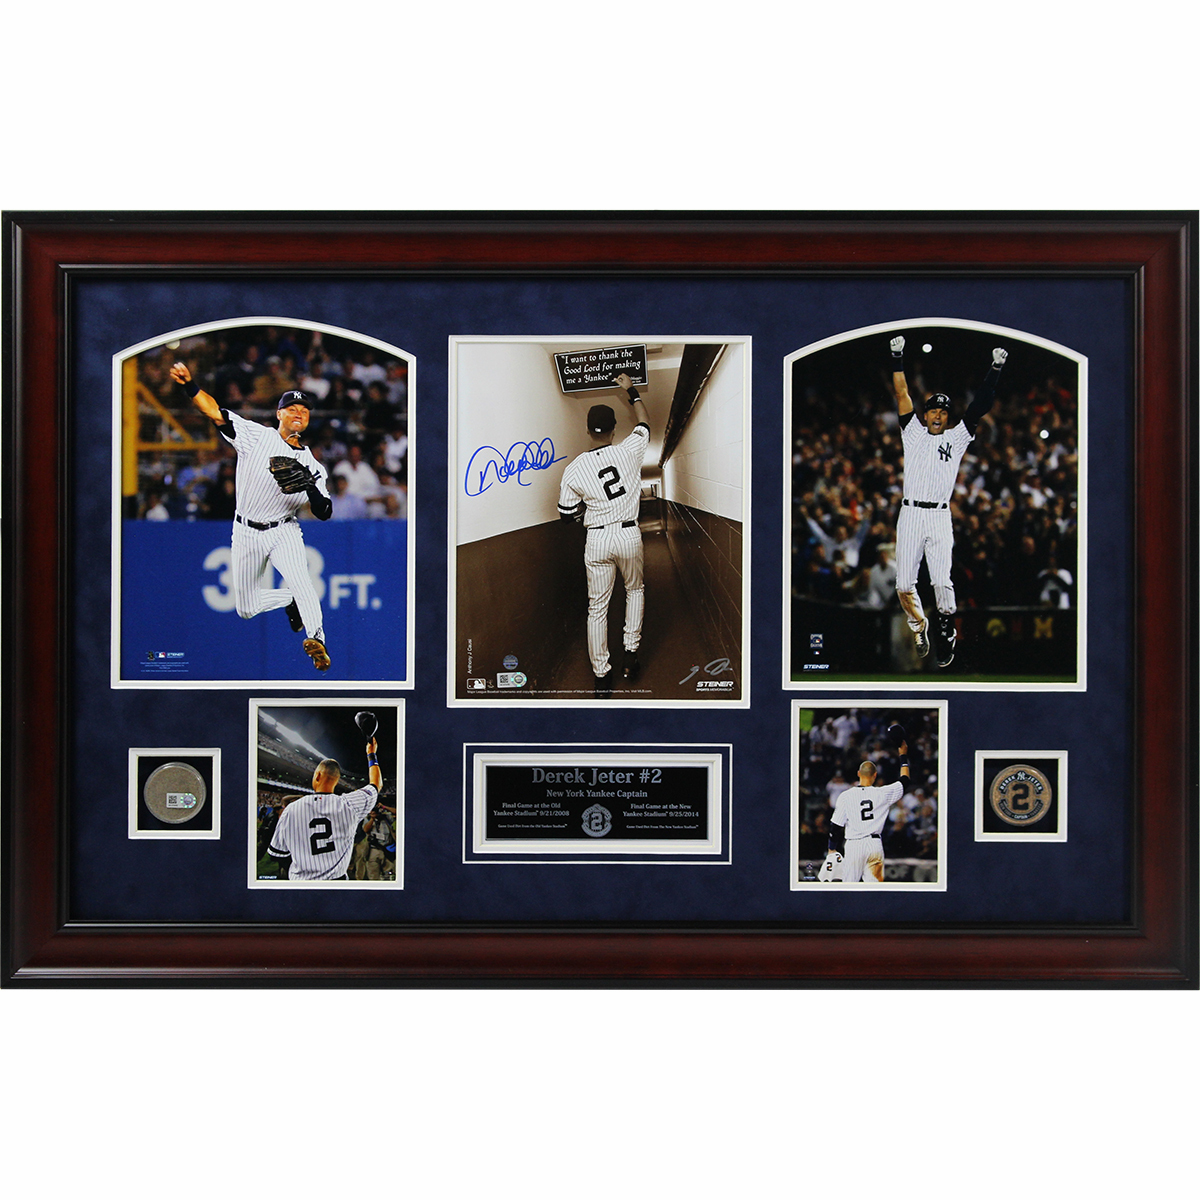 Derek Jeter 2 Final Games 18x29 Framed Collage with Signed 8x10 and Game Used Dirt